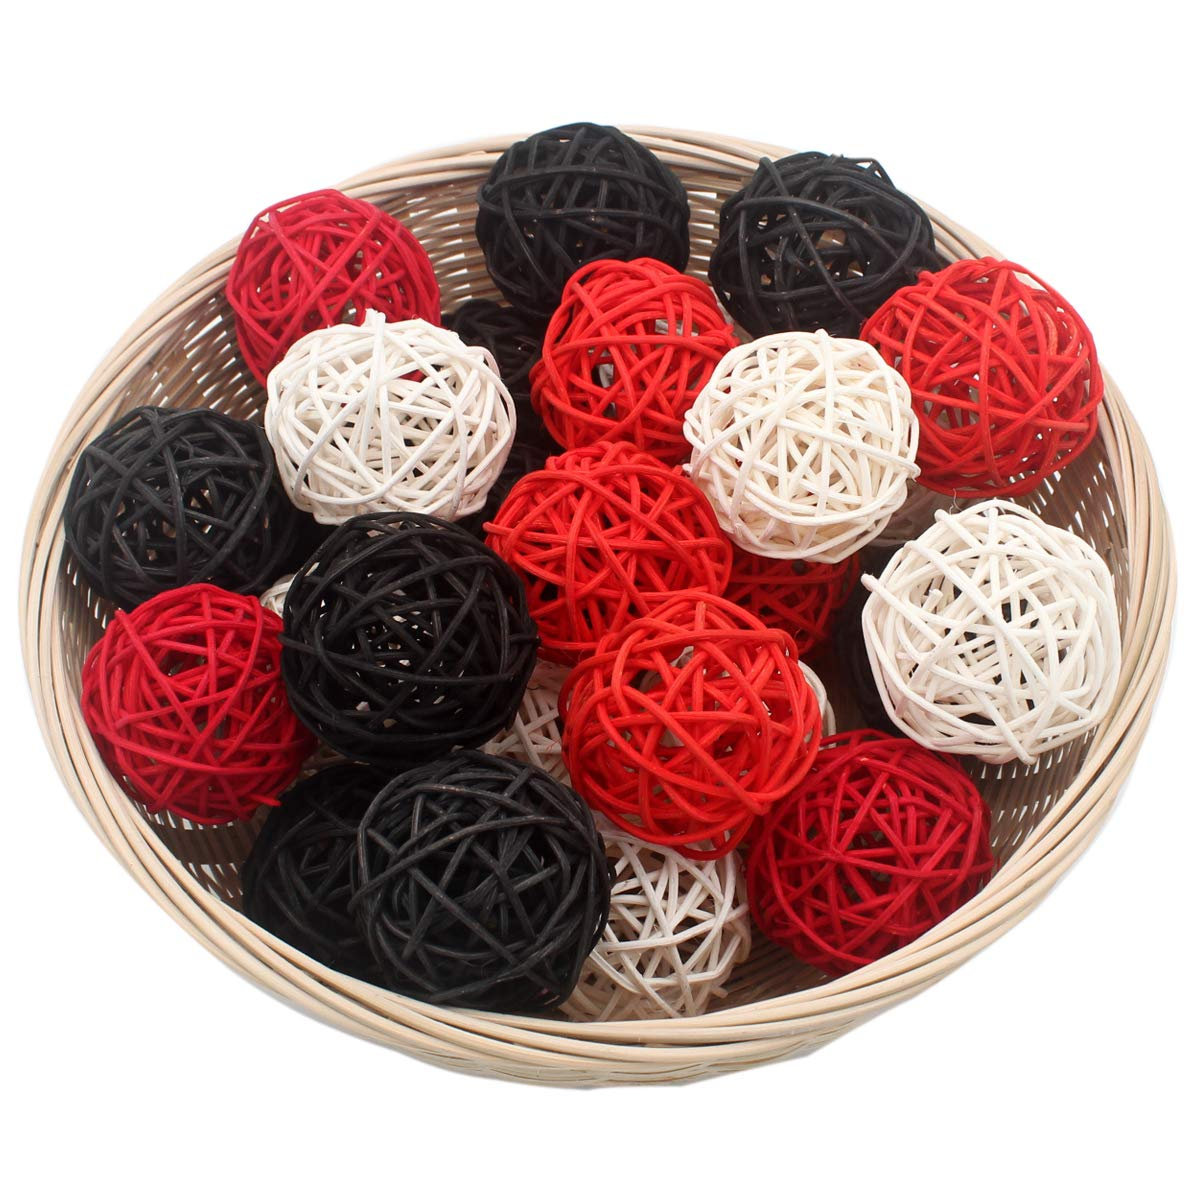 "Set of 15 Mixed Black Red White 2"" Small Decorative Wicker Rattan Balls Natural Sphere Orbs for Vase Bowl Filler Christmas Tree Ornaments Wedding Centerpieces Home Patio Garden Hanging Decoration"